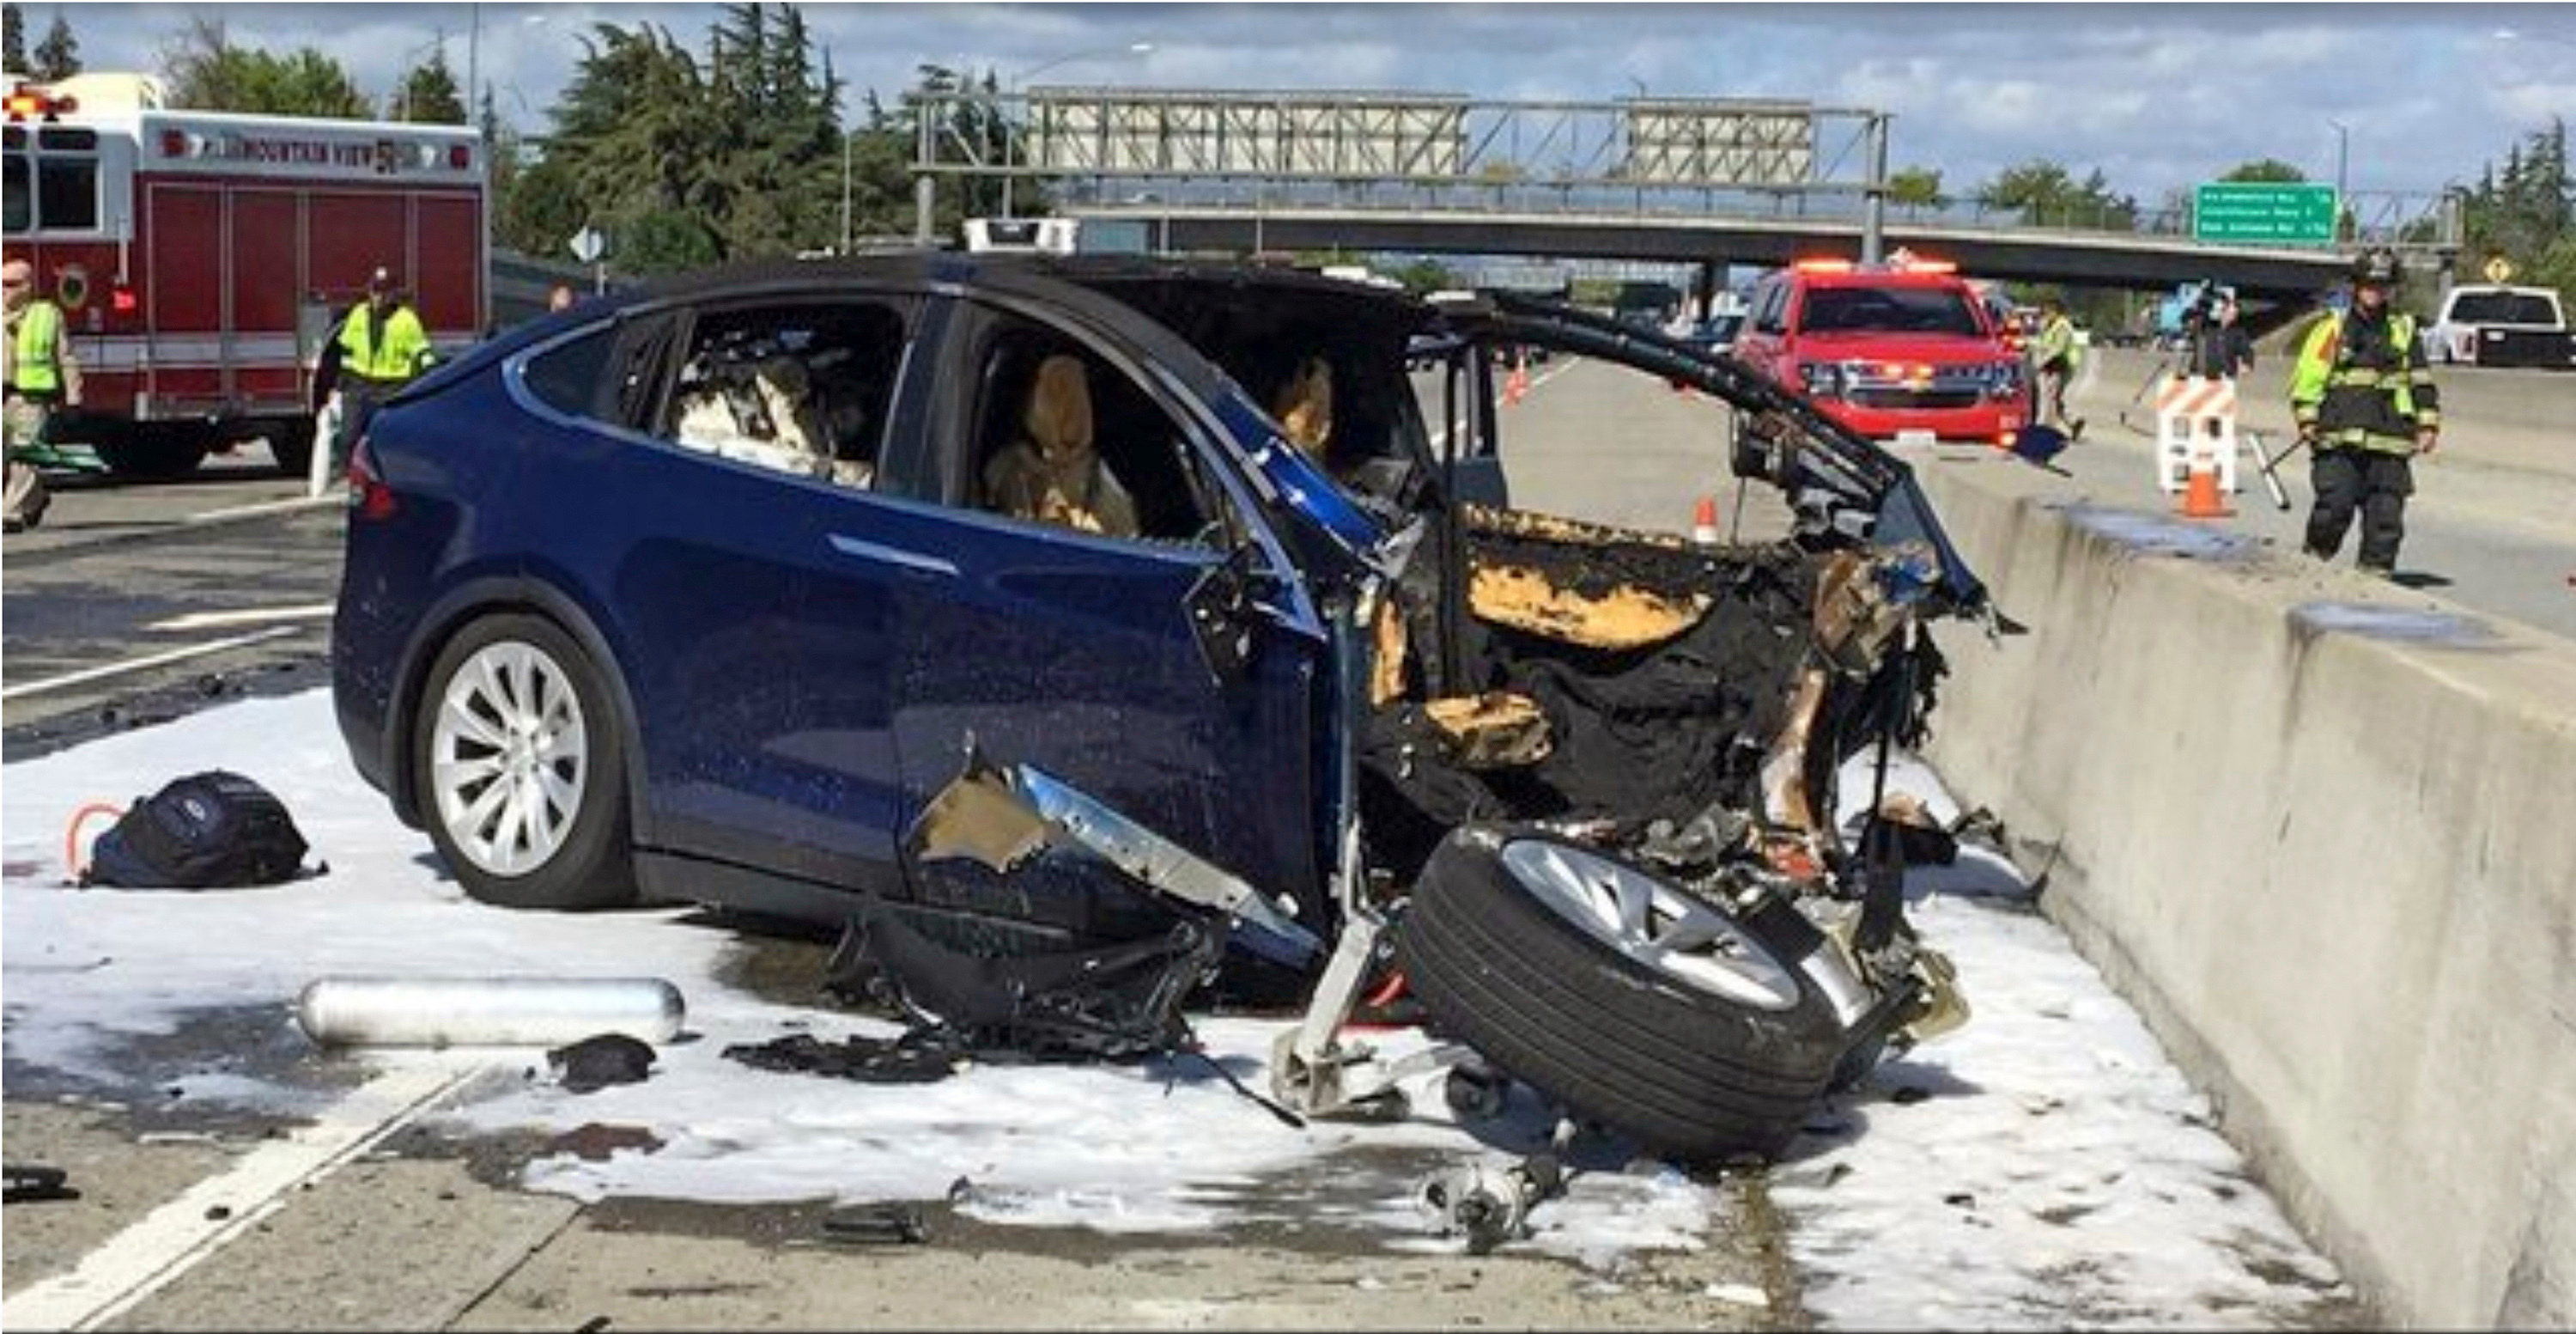 Emergency personnel work a the scene where a Tesla electric SUV crashed into a barrier on U.S. Highway 101 in California.